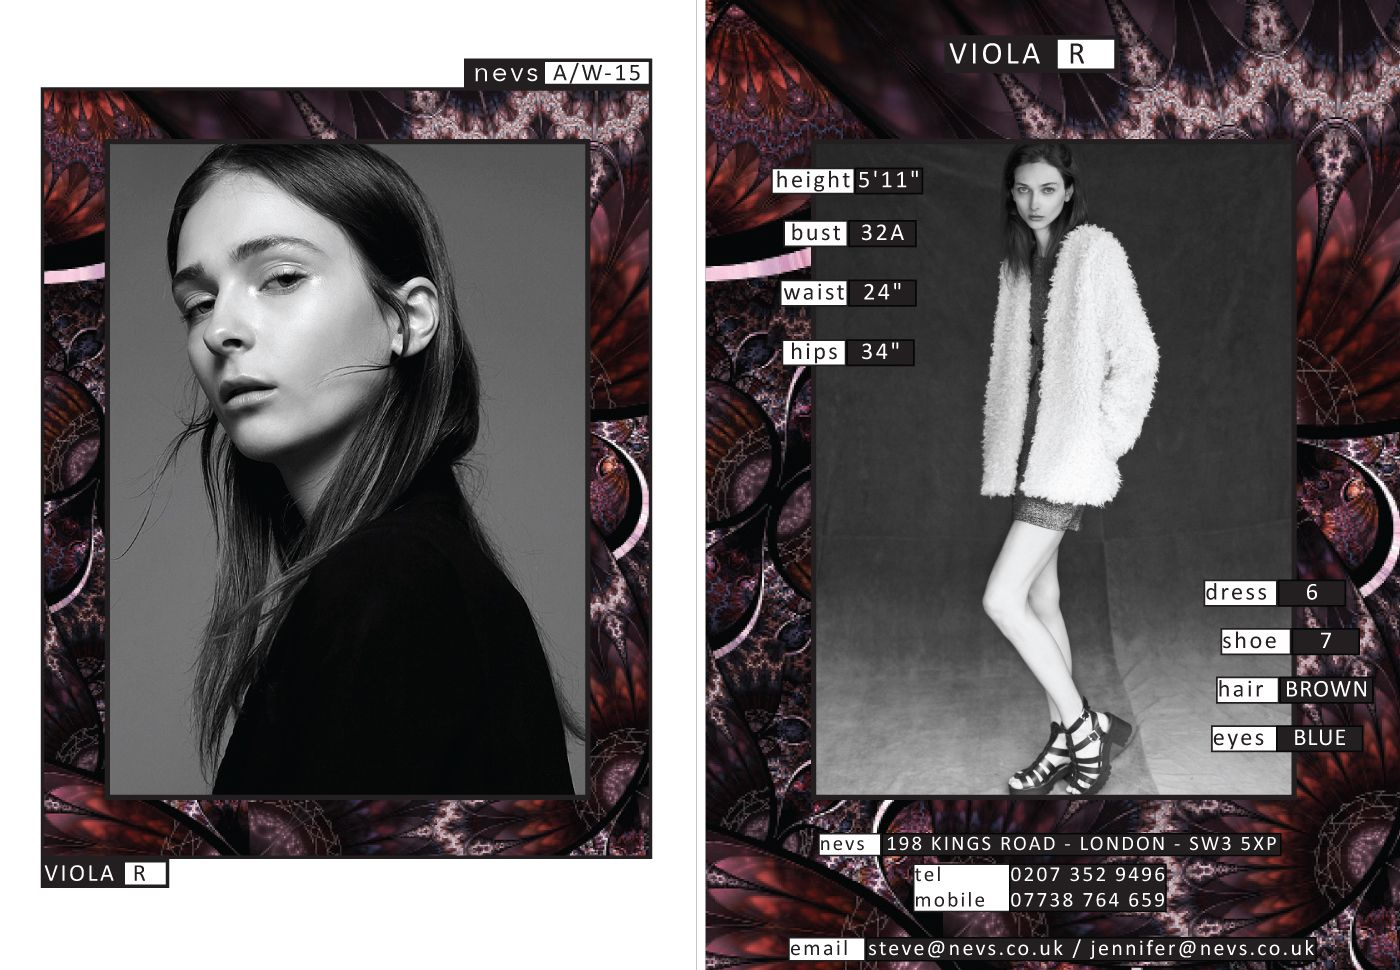 Viola AW15 show card. #London #AW15 #LondonFashionWeek #LFW #models #girls #runway #nevsshows #nevswomen